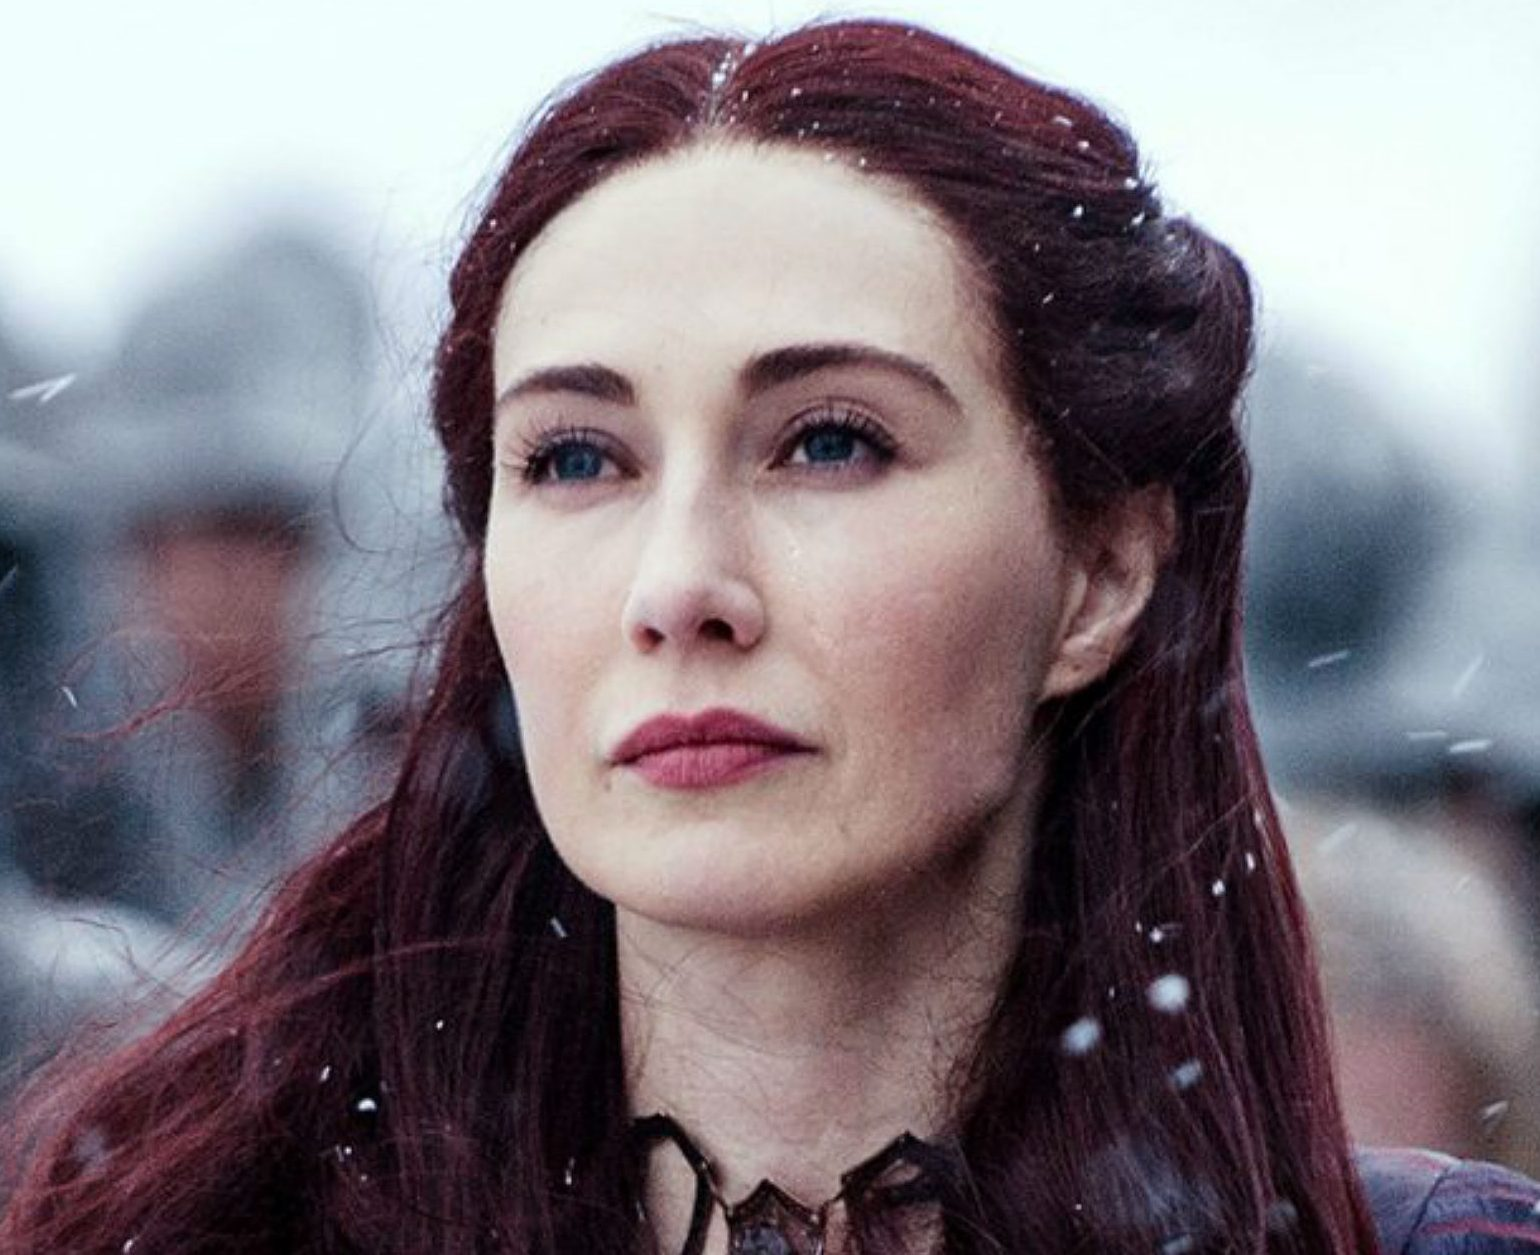 melisandre 2000x1270 1 e1626868394322 33 Things You Didn't Know About The Game of Thrones Cast